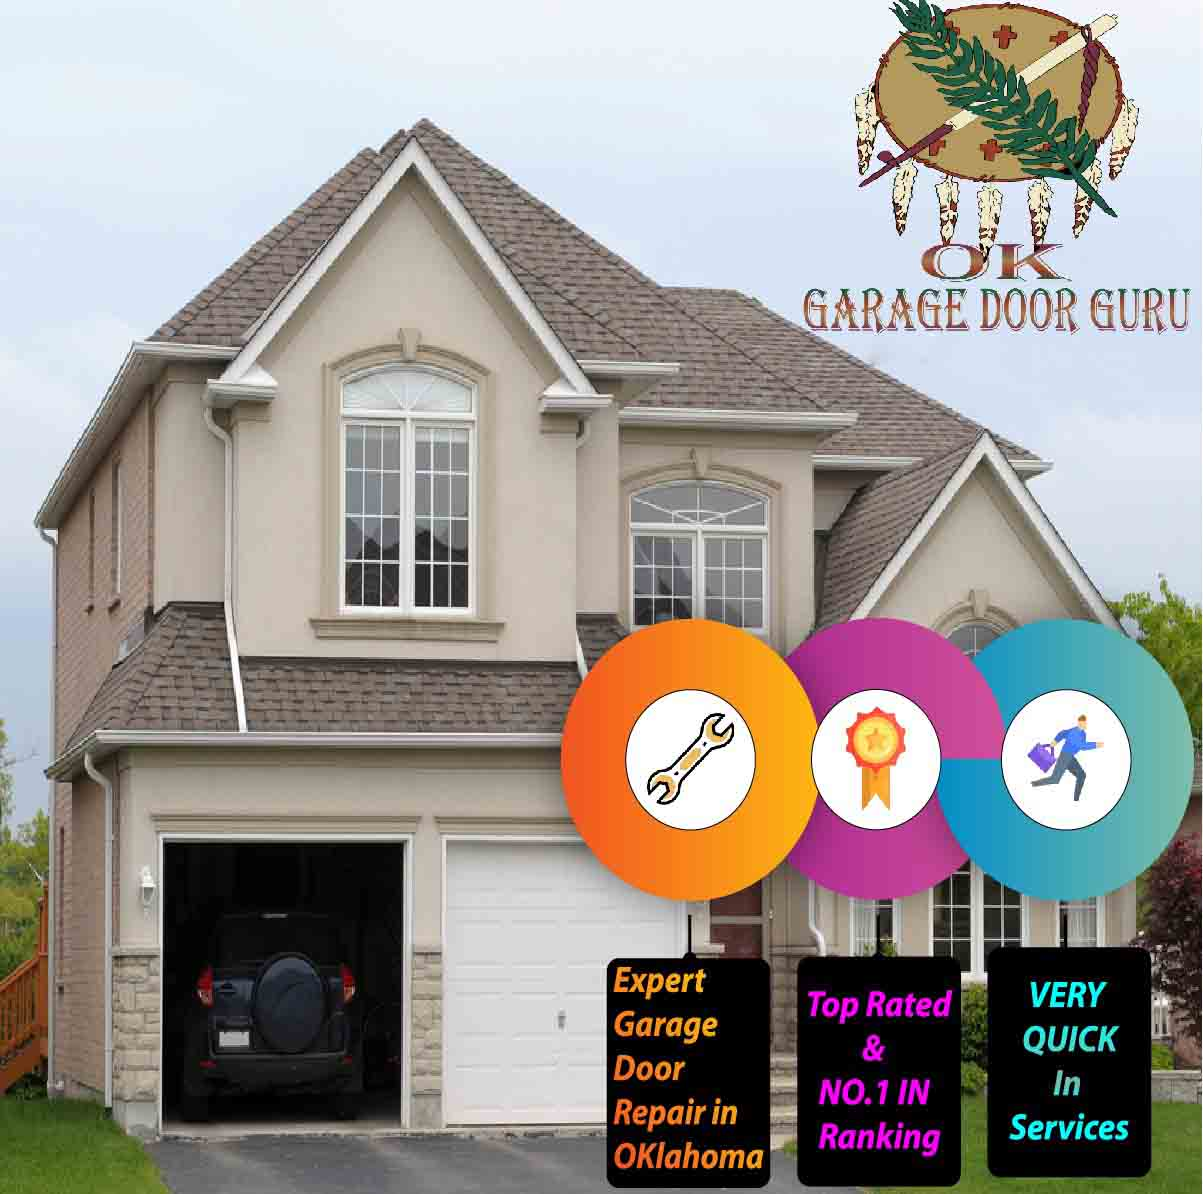 Emergency Garage Door Repair in Fair Oaks